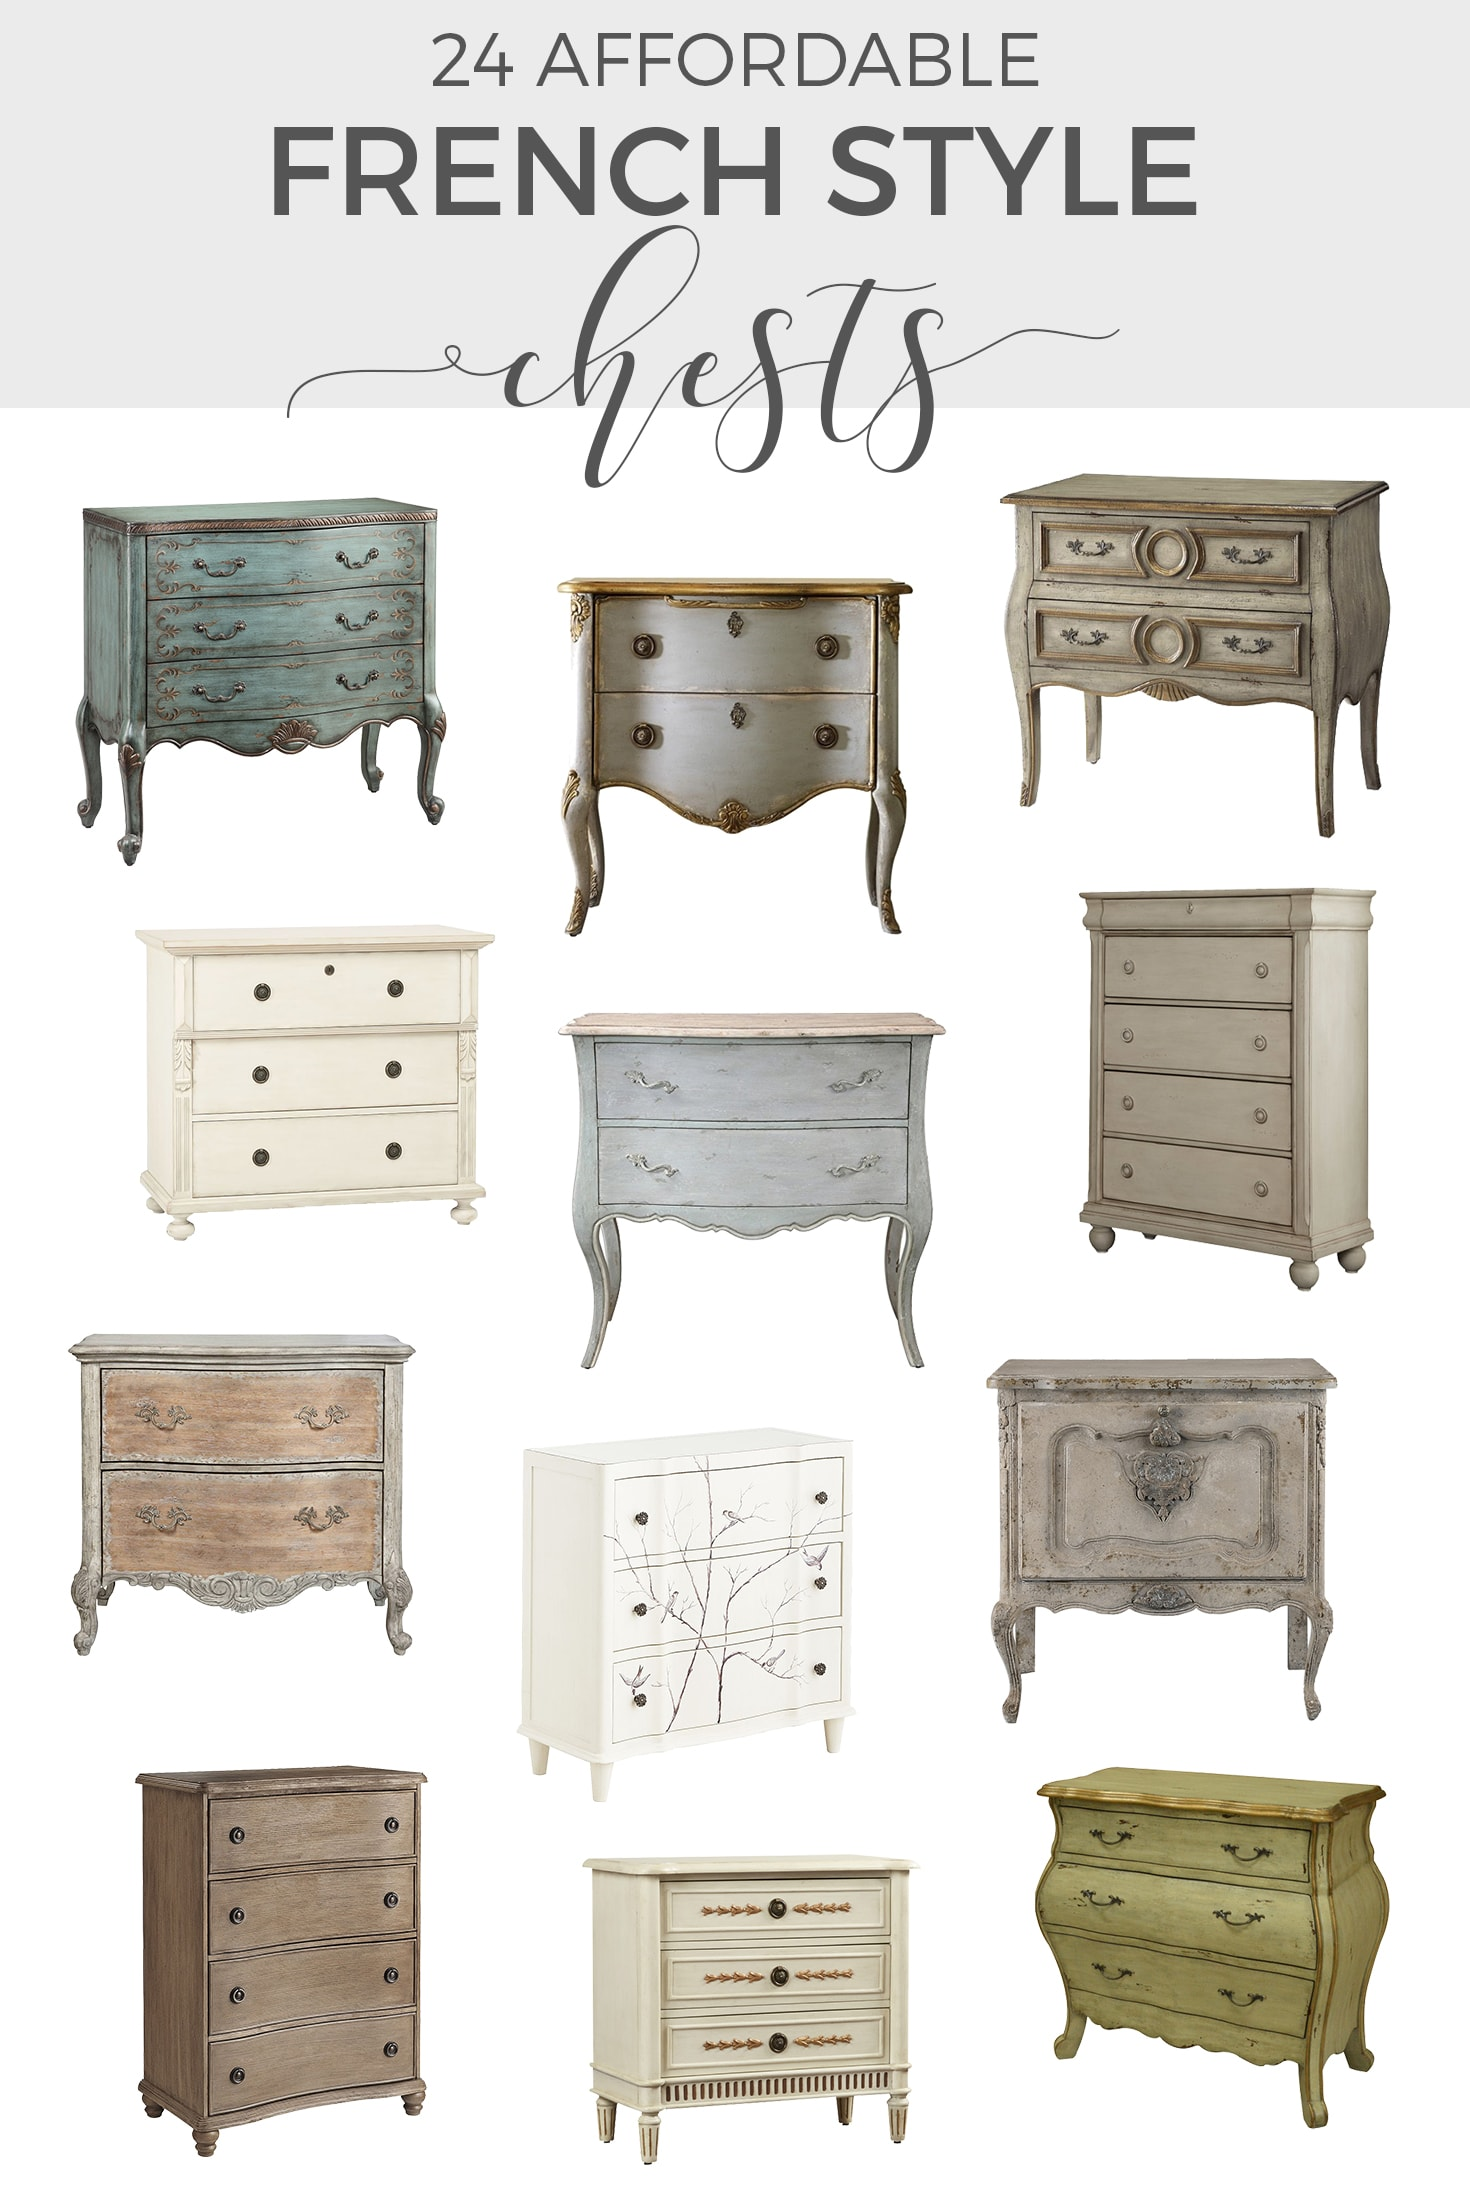 Affordable French Style Chests of Drawers